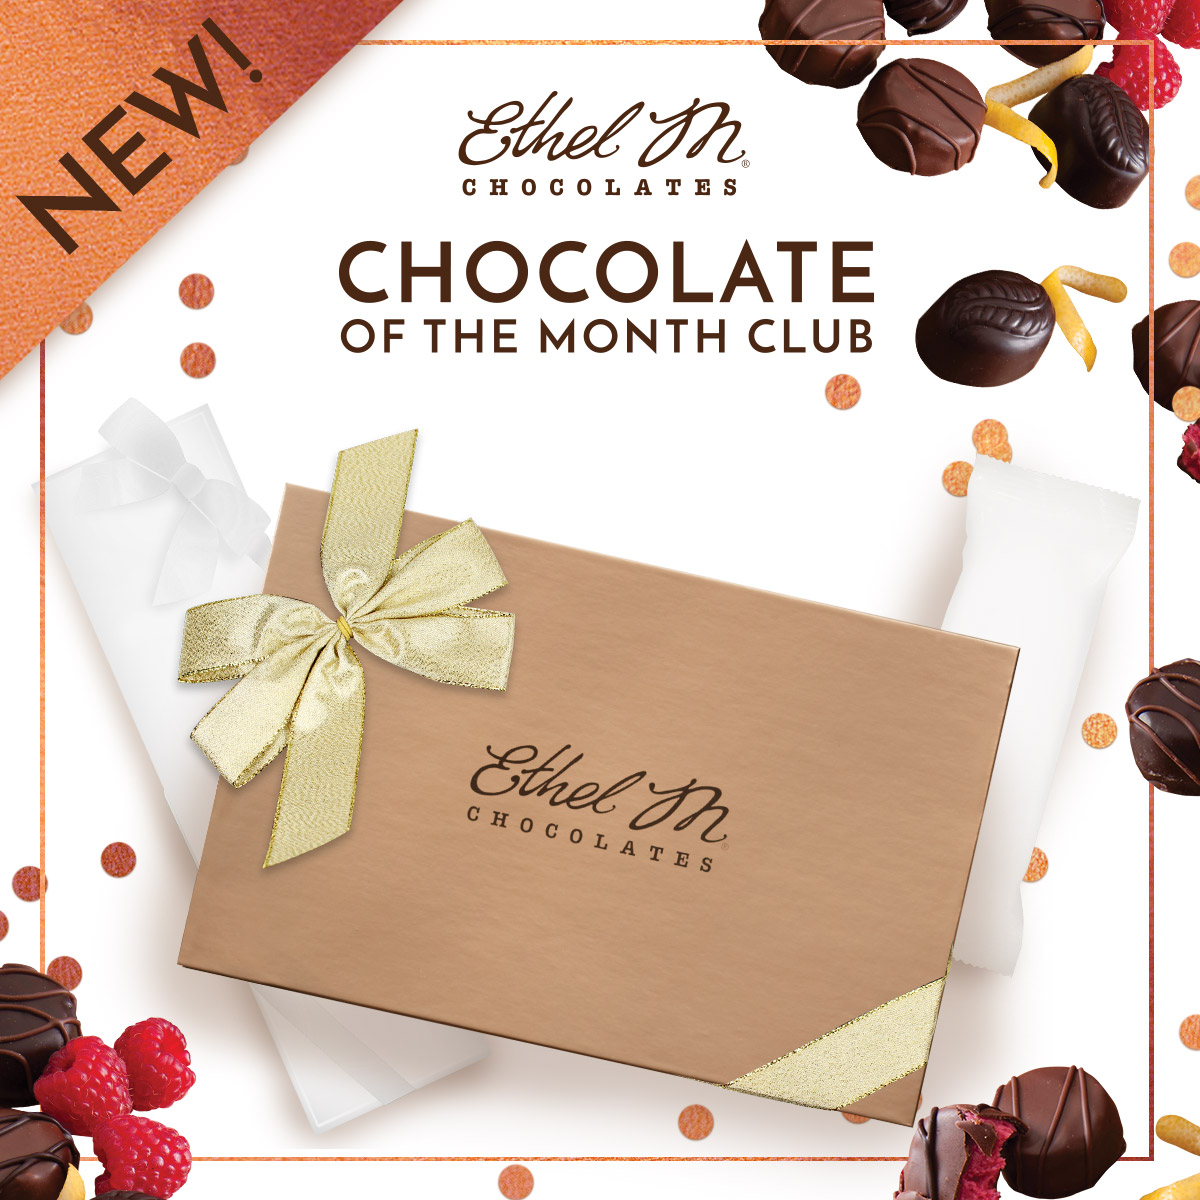 ethel m introduces Chocolate of the Month Club